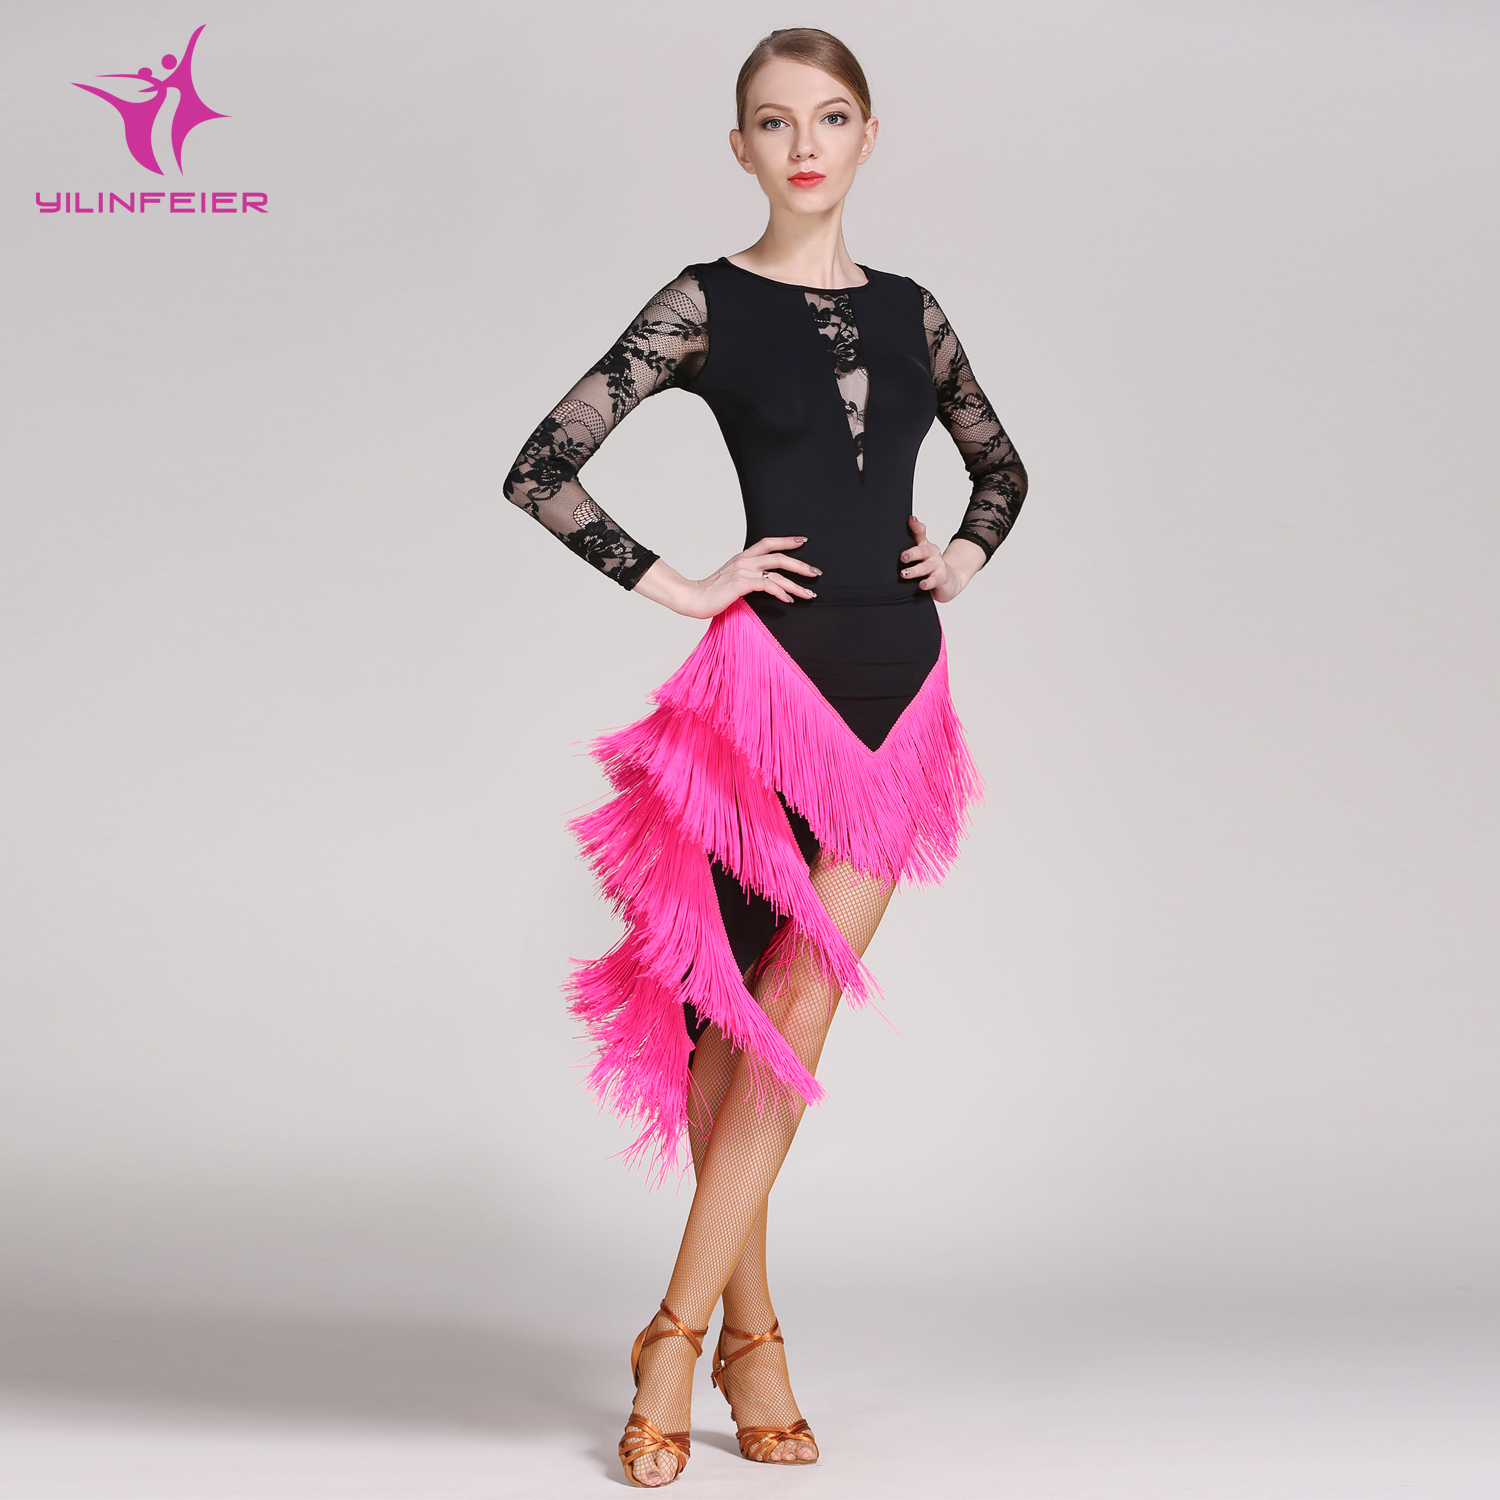 YILINFEIER GB015 and YL290 Latin Dance Top and Skirt Suits Dance Dress Ballroom Costume Leotard Women Lady Evening Party Dress